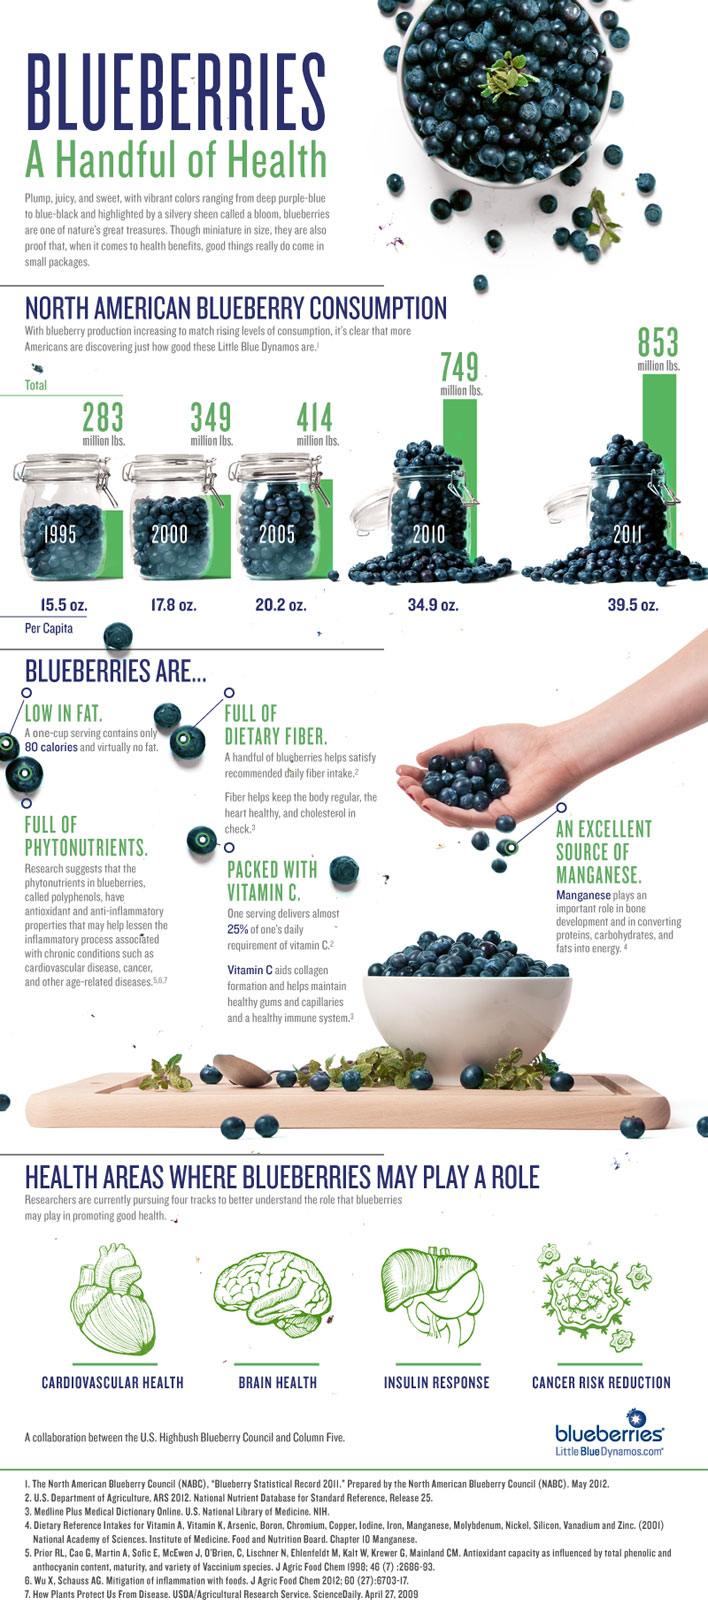 9 Blueberry Benefits Infographic